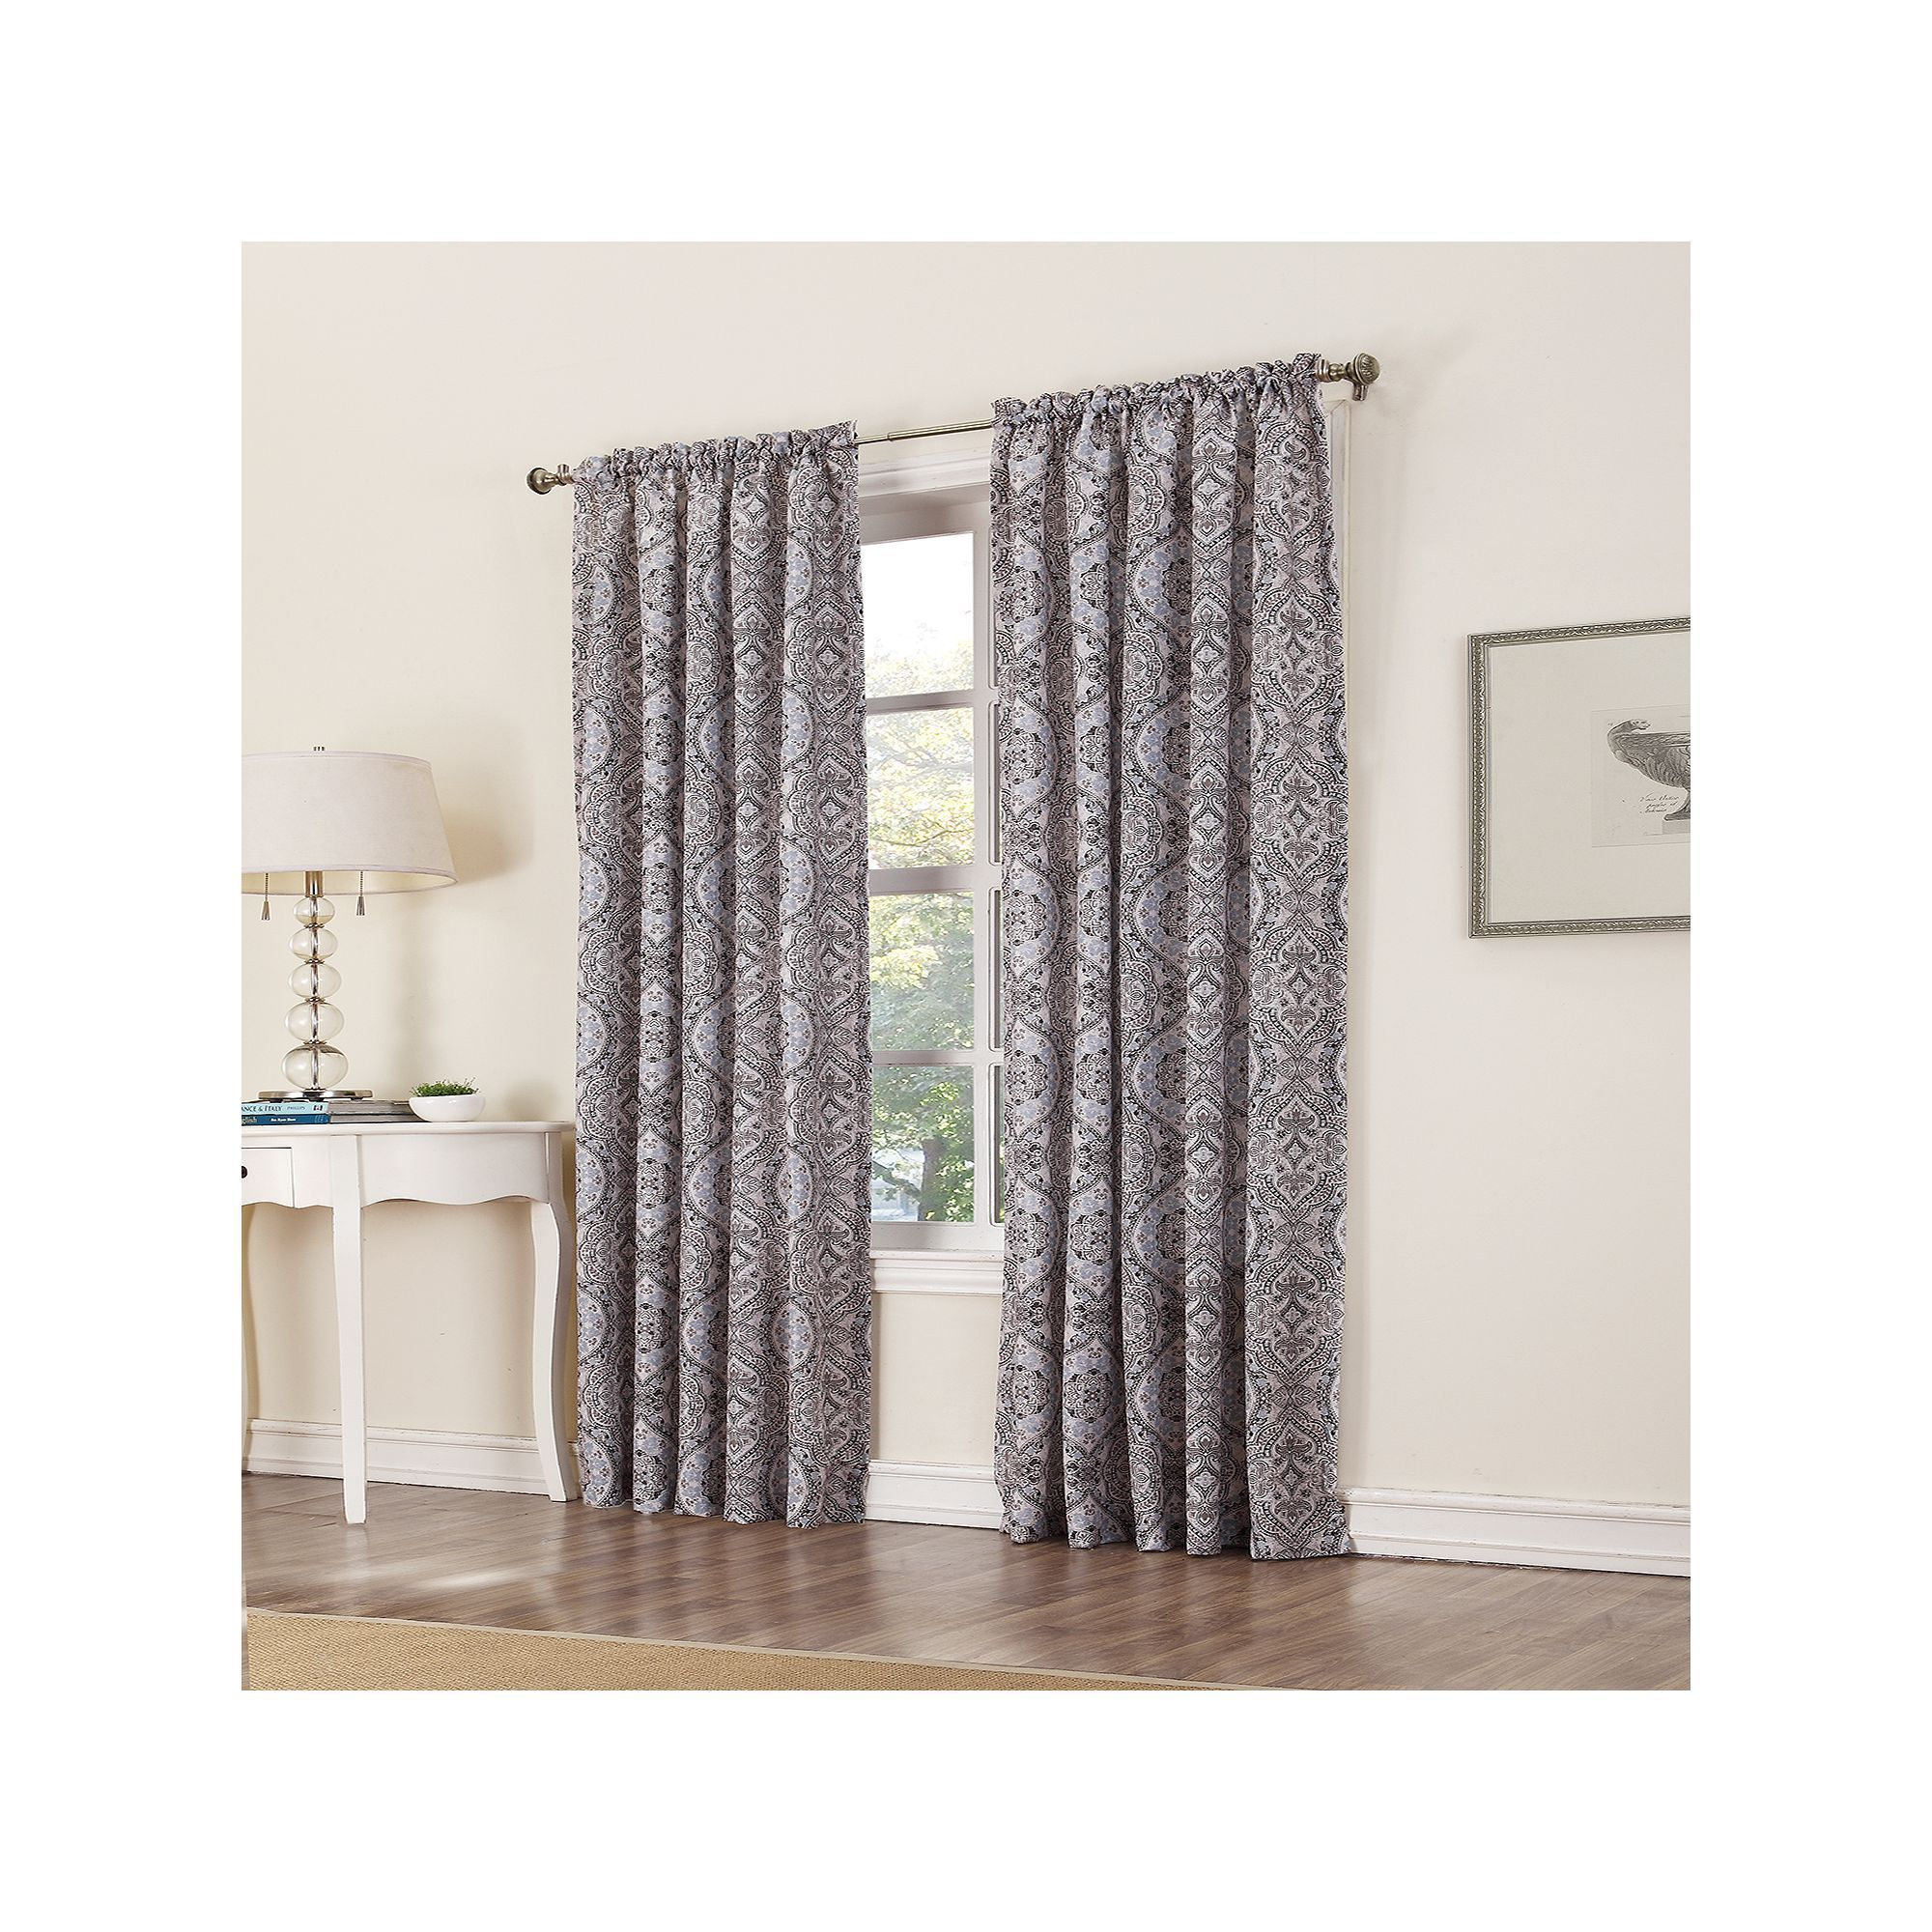 No amira curtain blue products